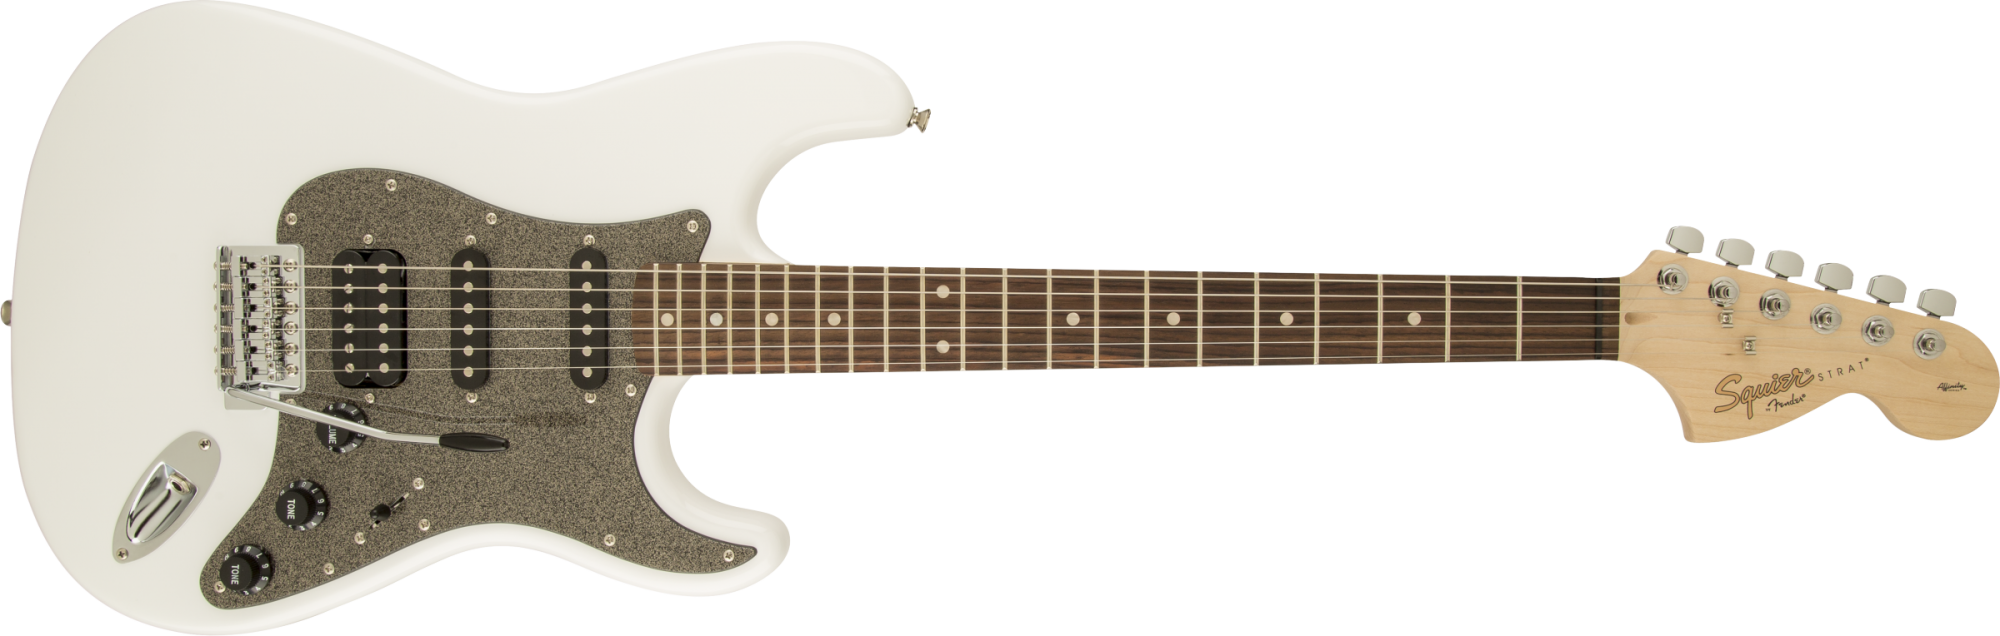 Fender Squire Affinity Series Stratocaster HSS Laurel Fingerboard Olympic White